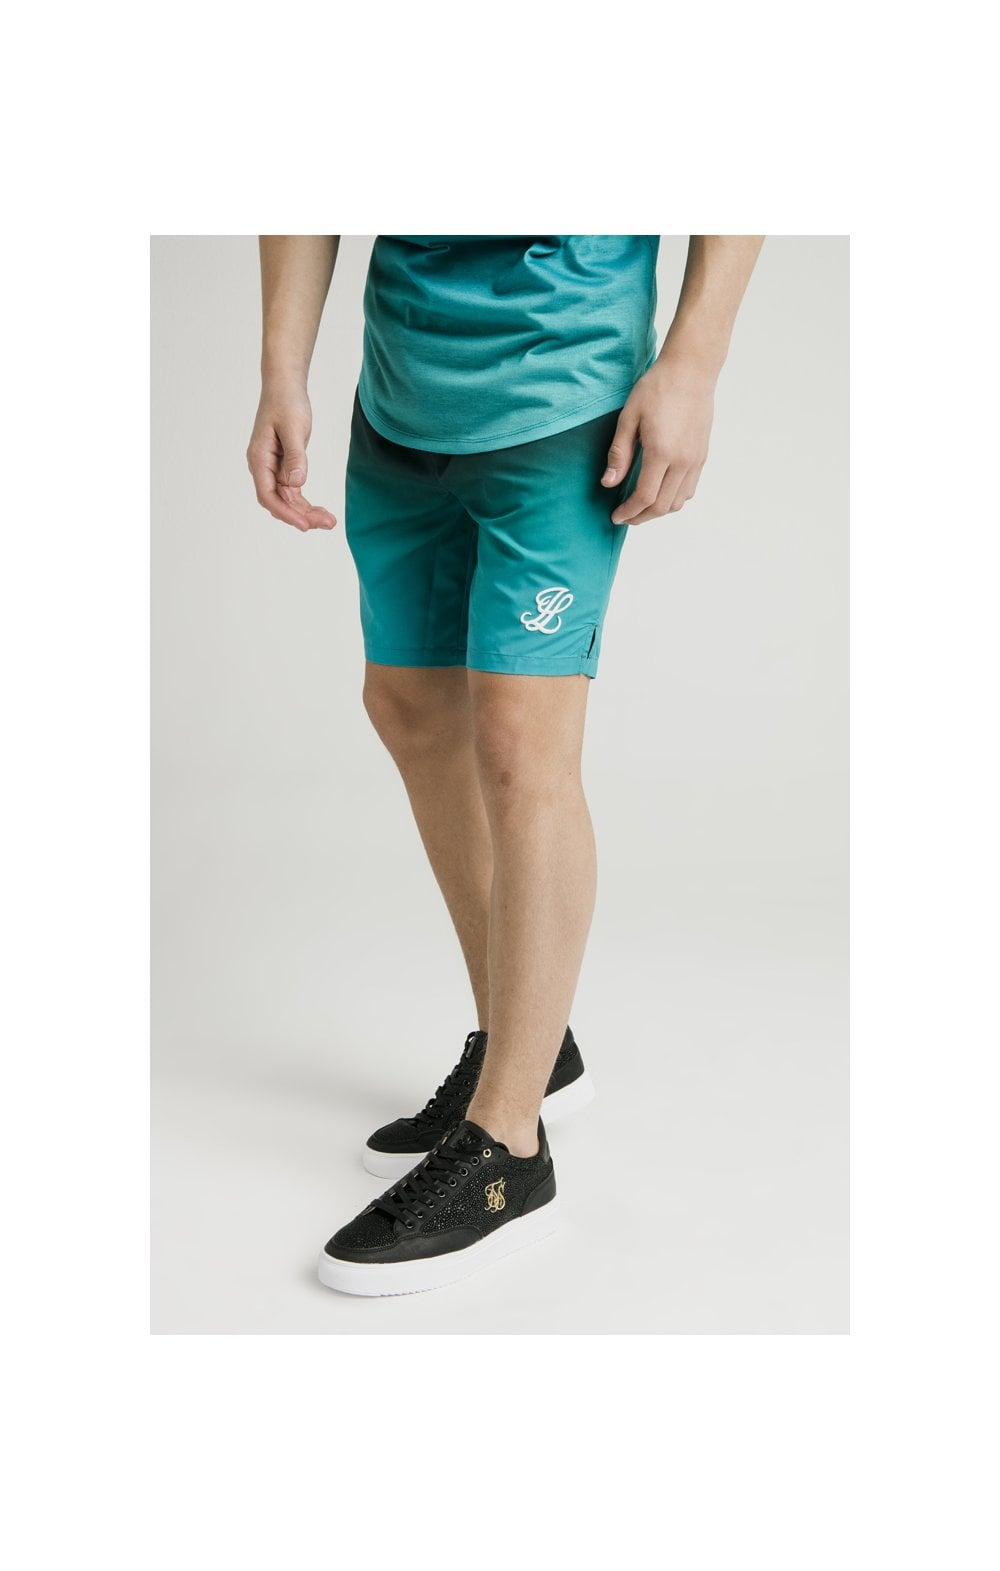 Illusive London Swim Shorts - Black & Green